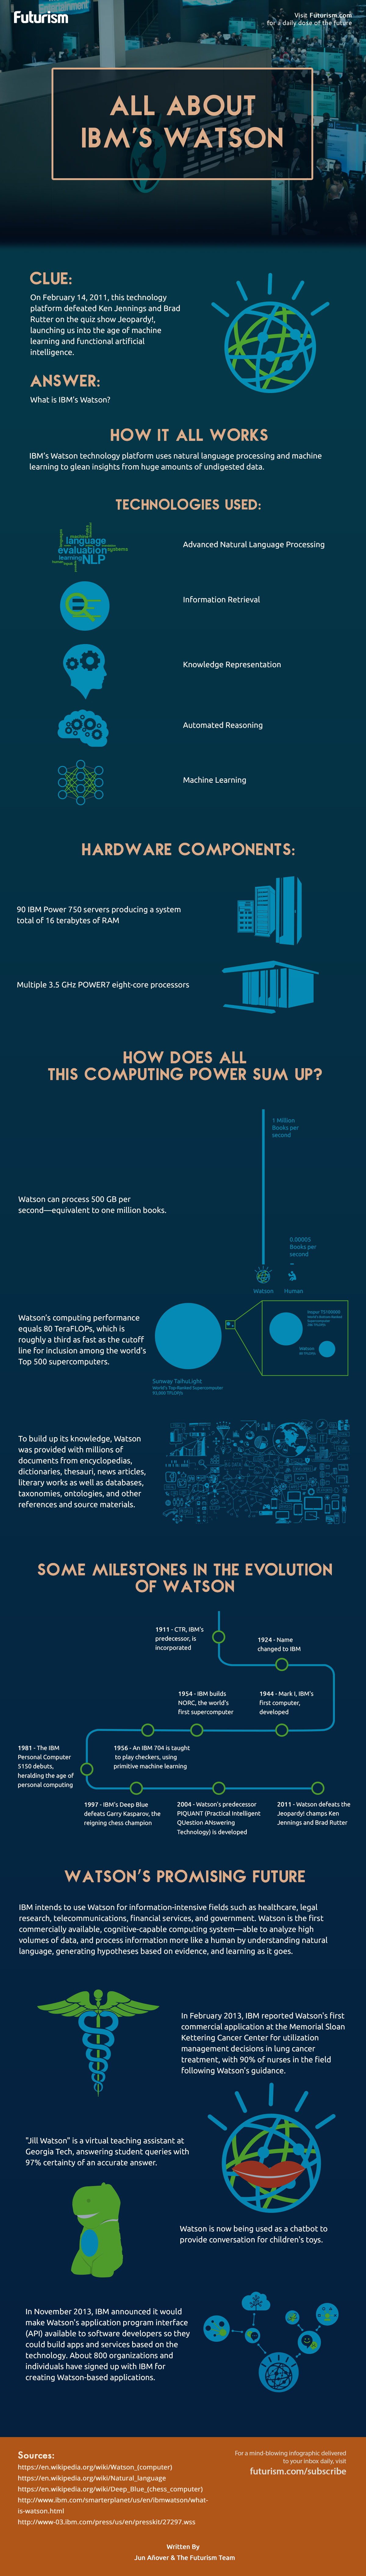 All About IBM's Watson [Infographic] http://goo.gl/UyIhdO